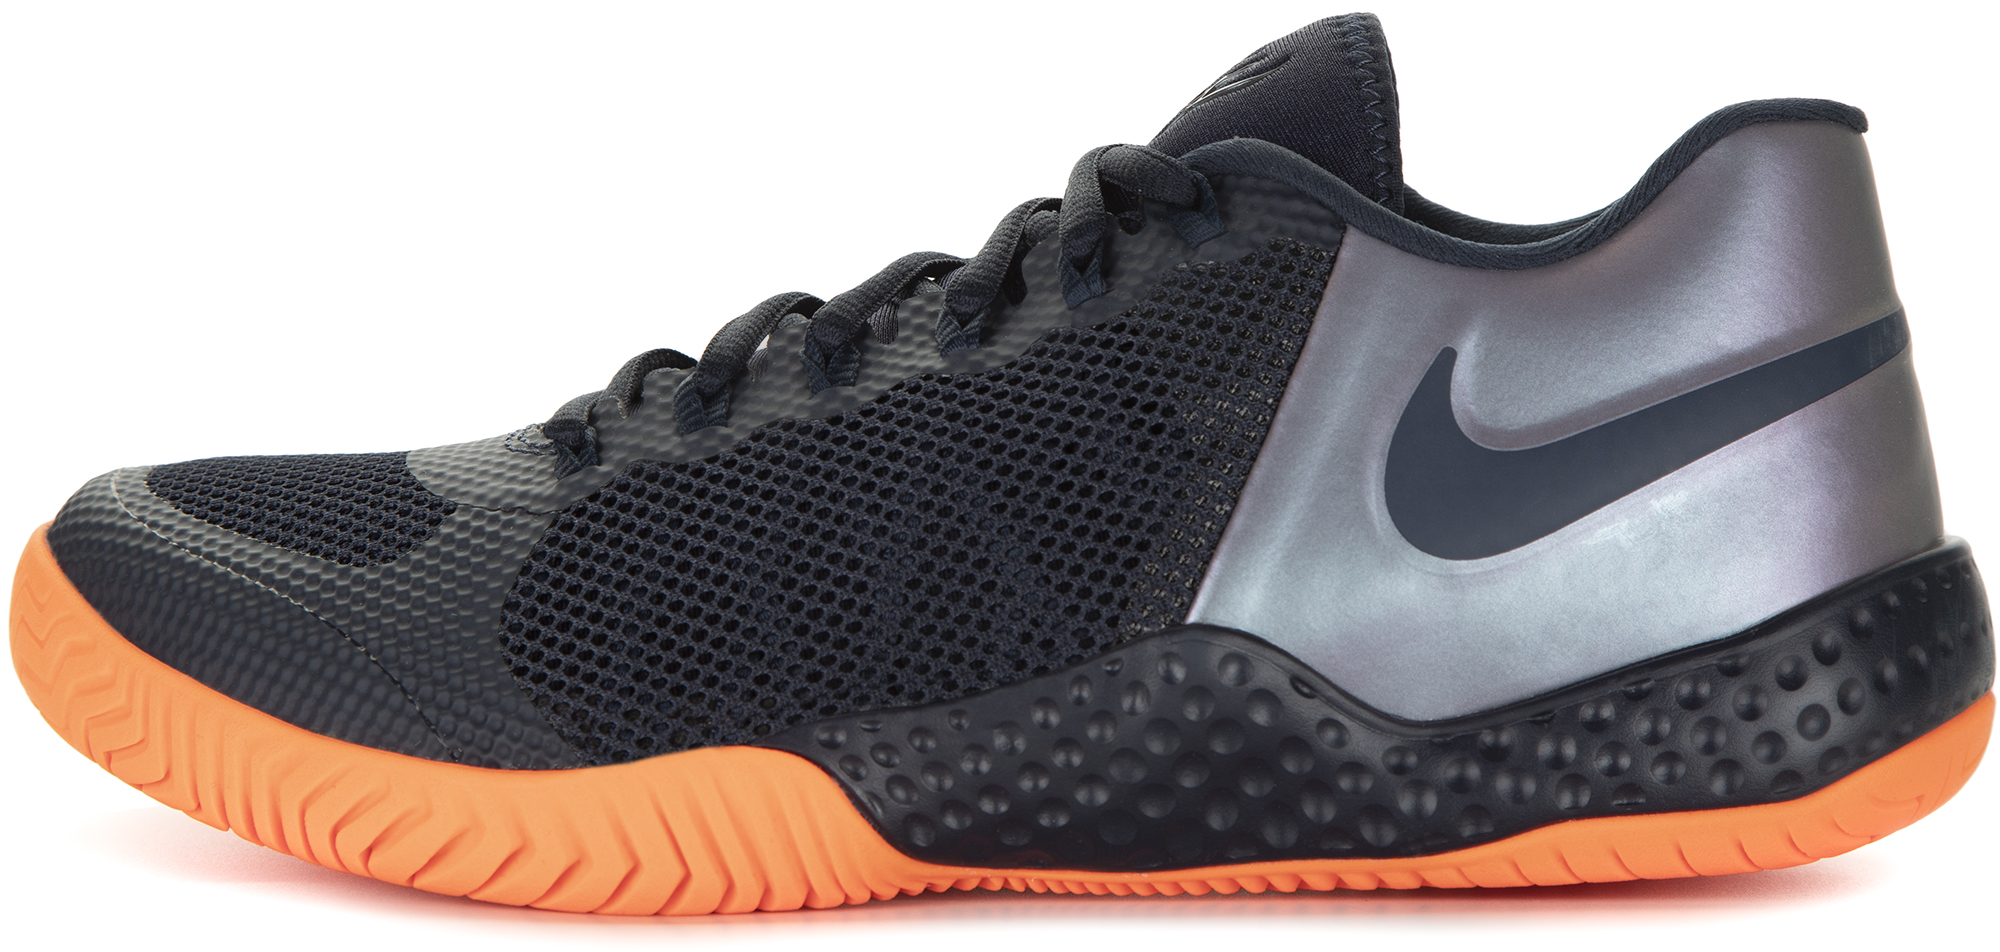 Nike Кроссовки женские Nike Court Flare 2 QS, размер 40